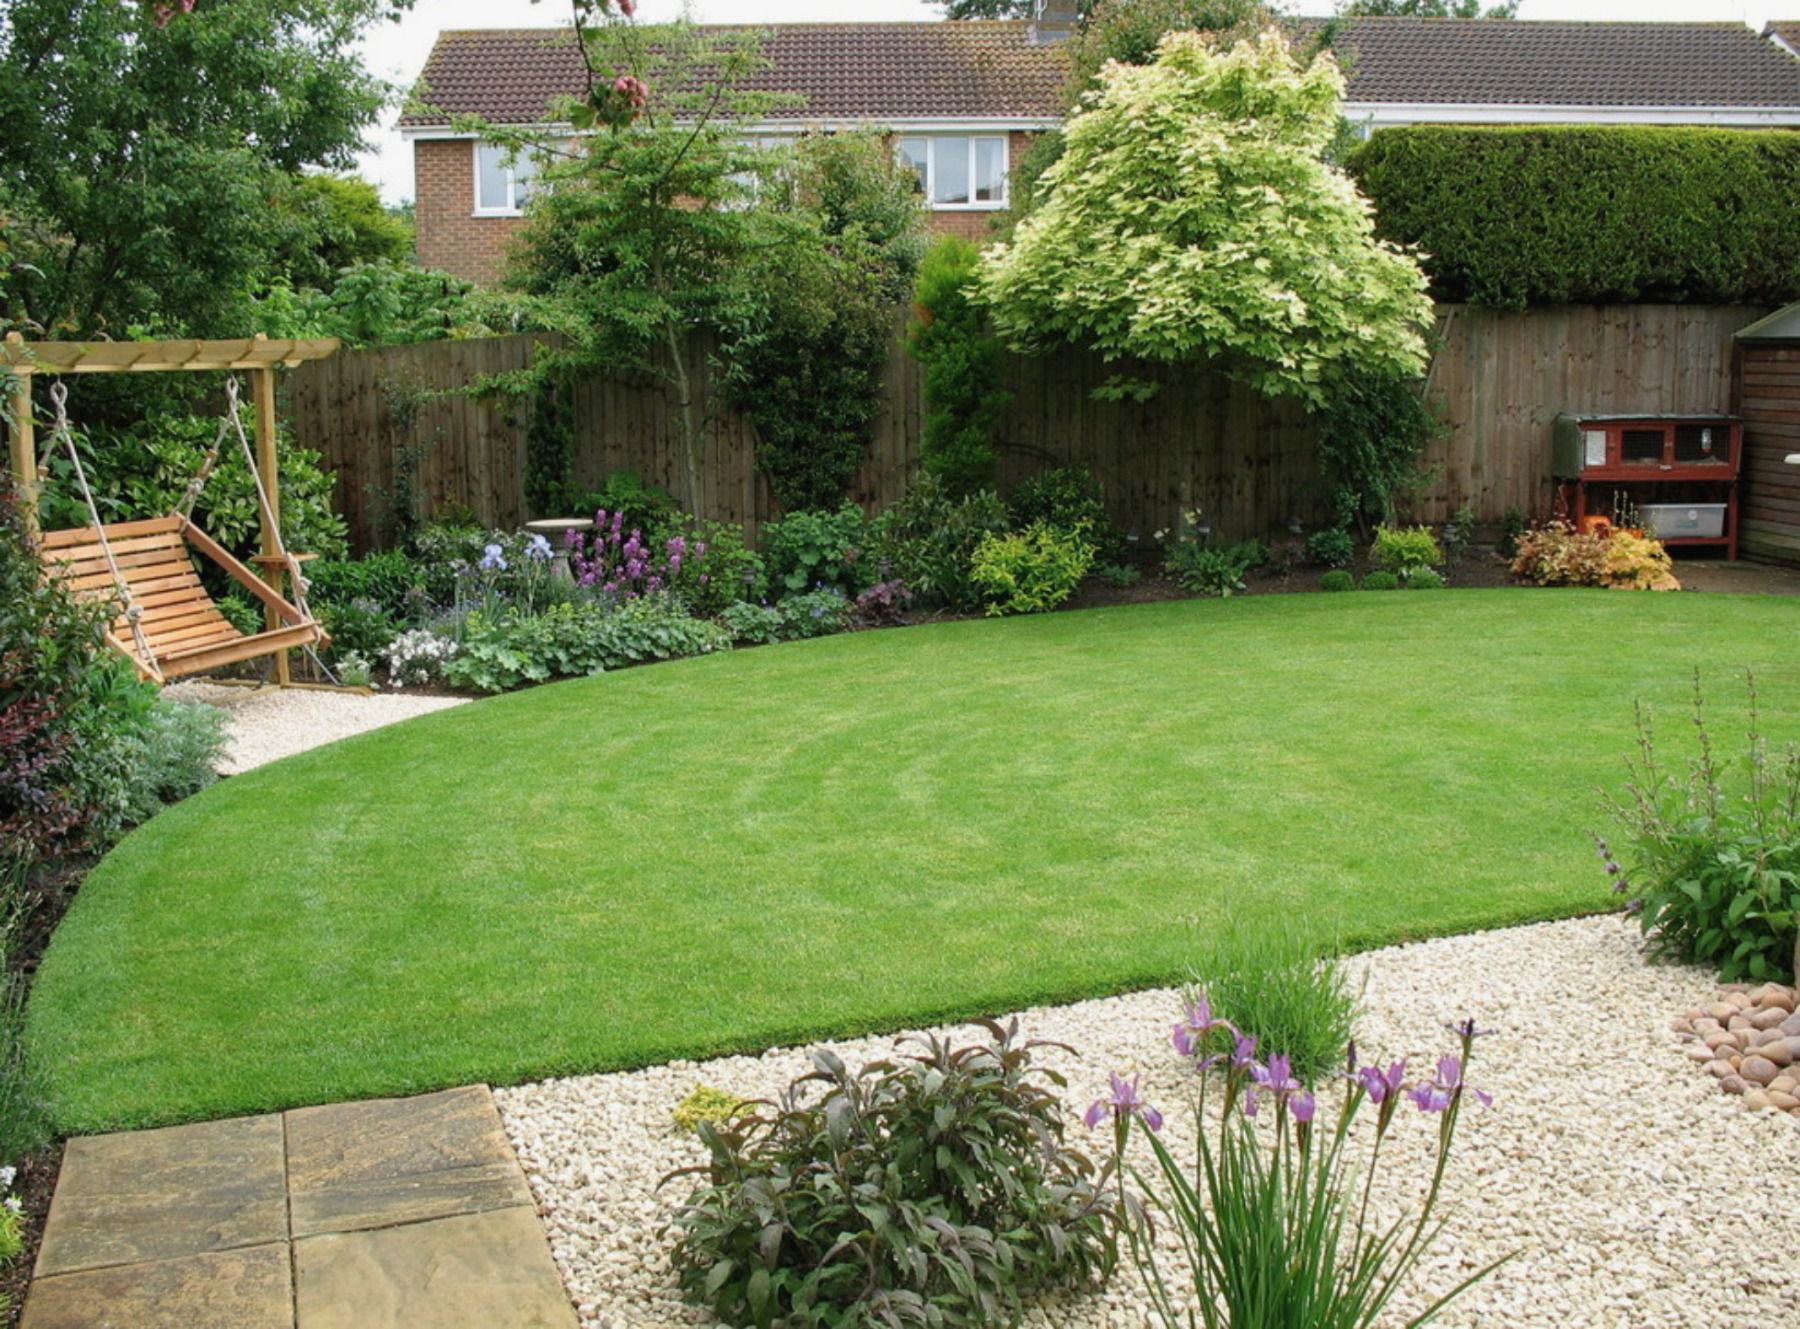 50 Backyard Landscaping Ideas To Inspire You with regard to Backyard Landscape Pictures